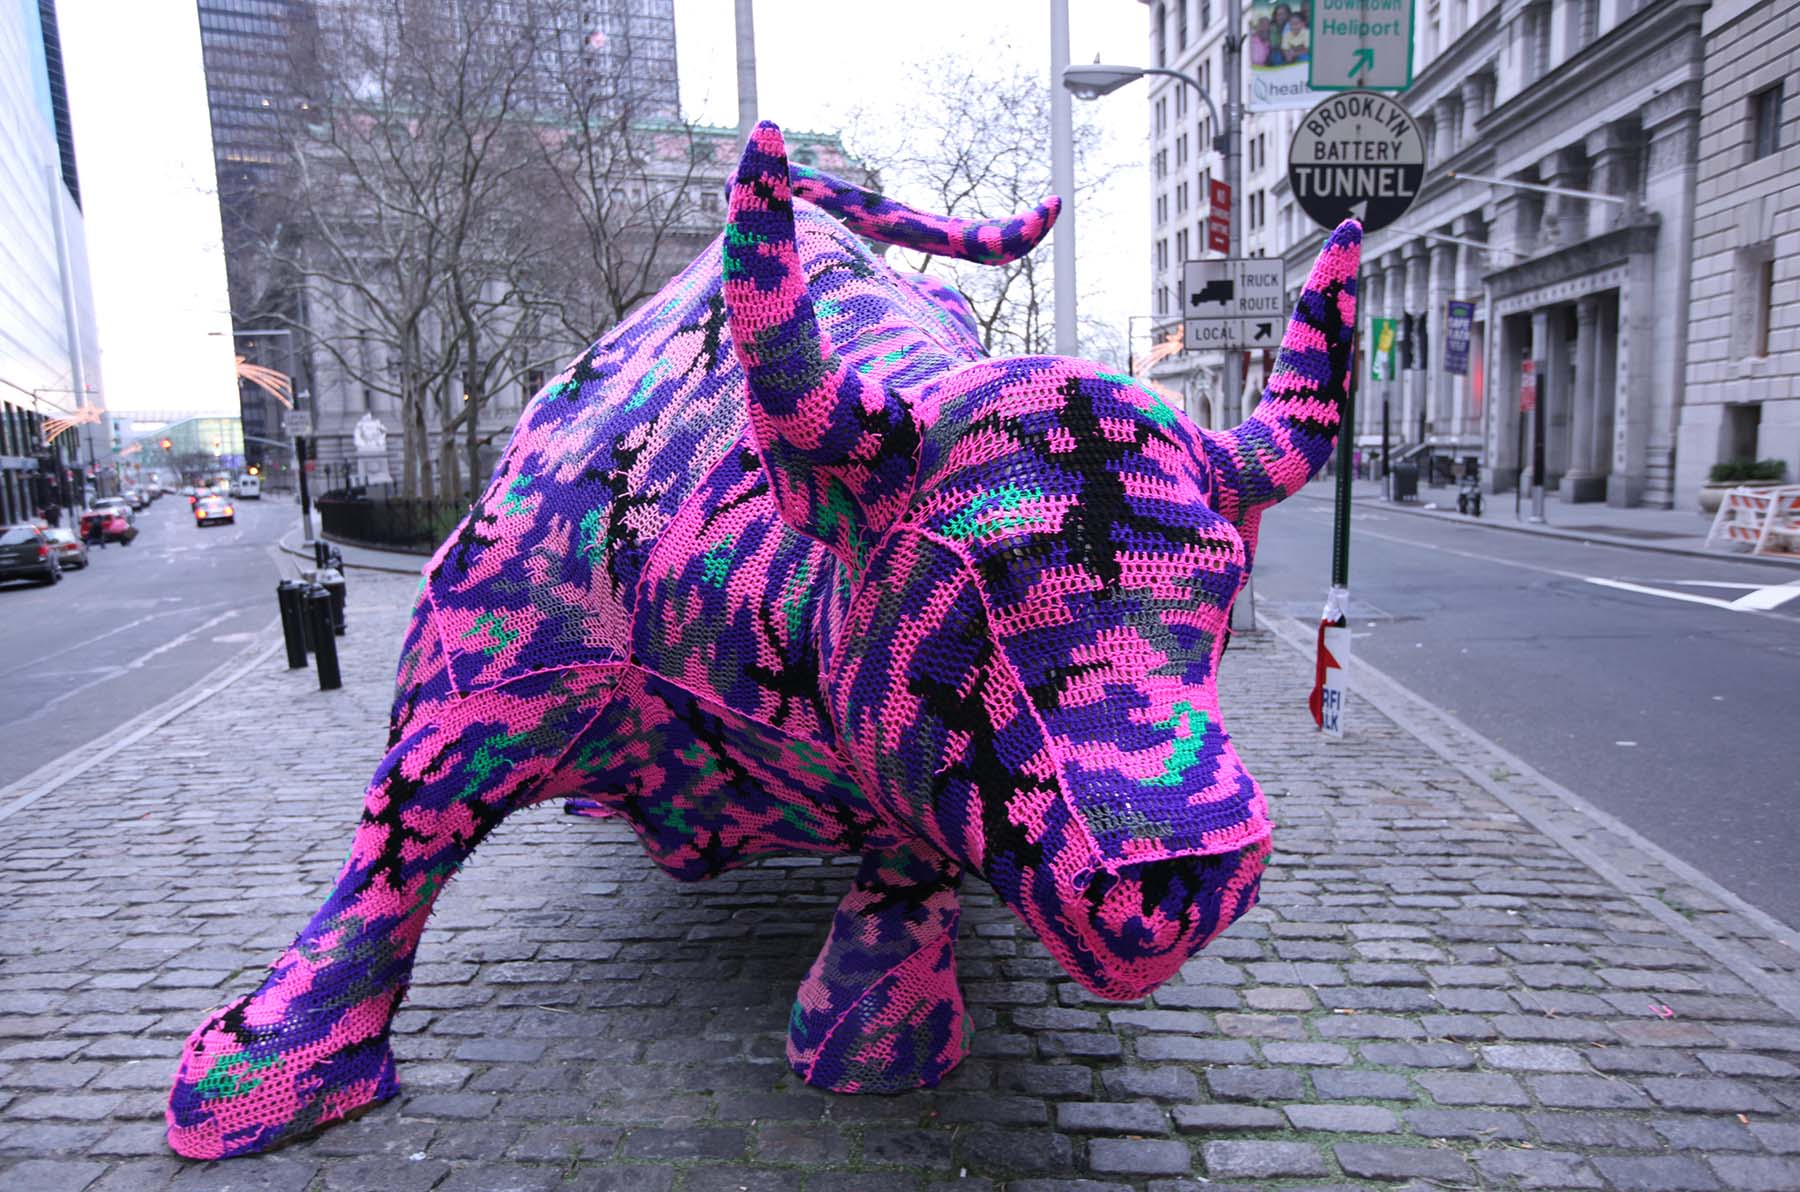 international female artist, womens rights, interventions, olek, famous wrapping art